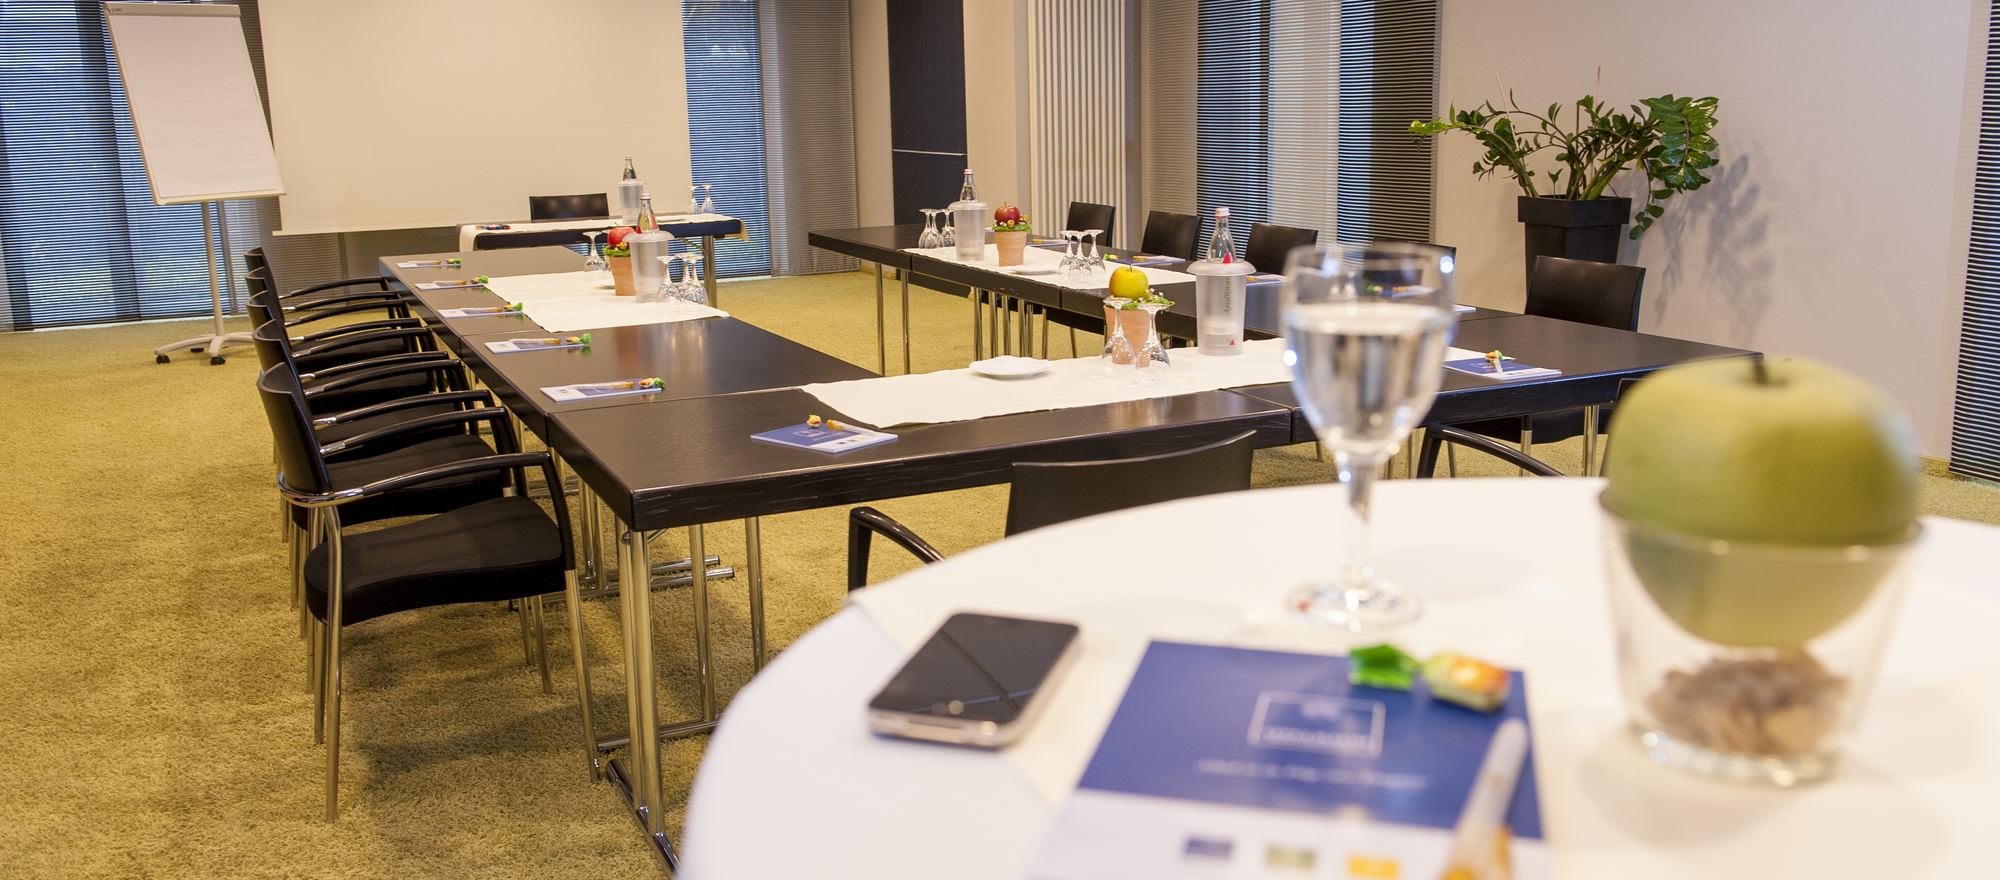 Conferencing with the all-round carefree package at the 4-star hotel Ringhotel Appelbaum in Guetersloh